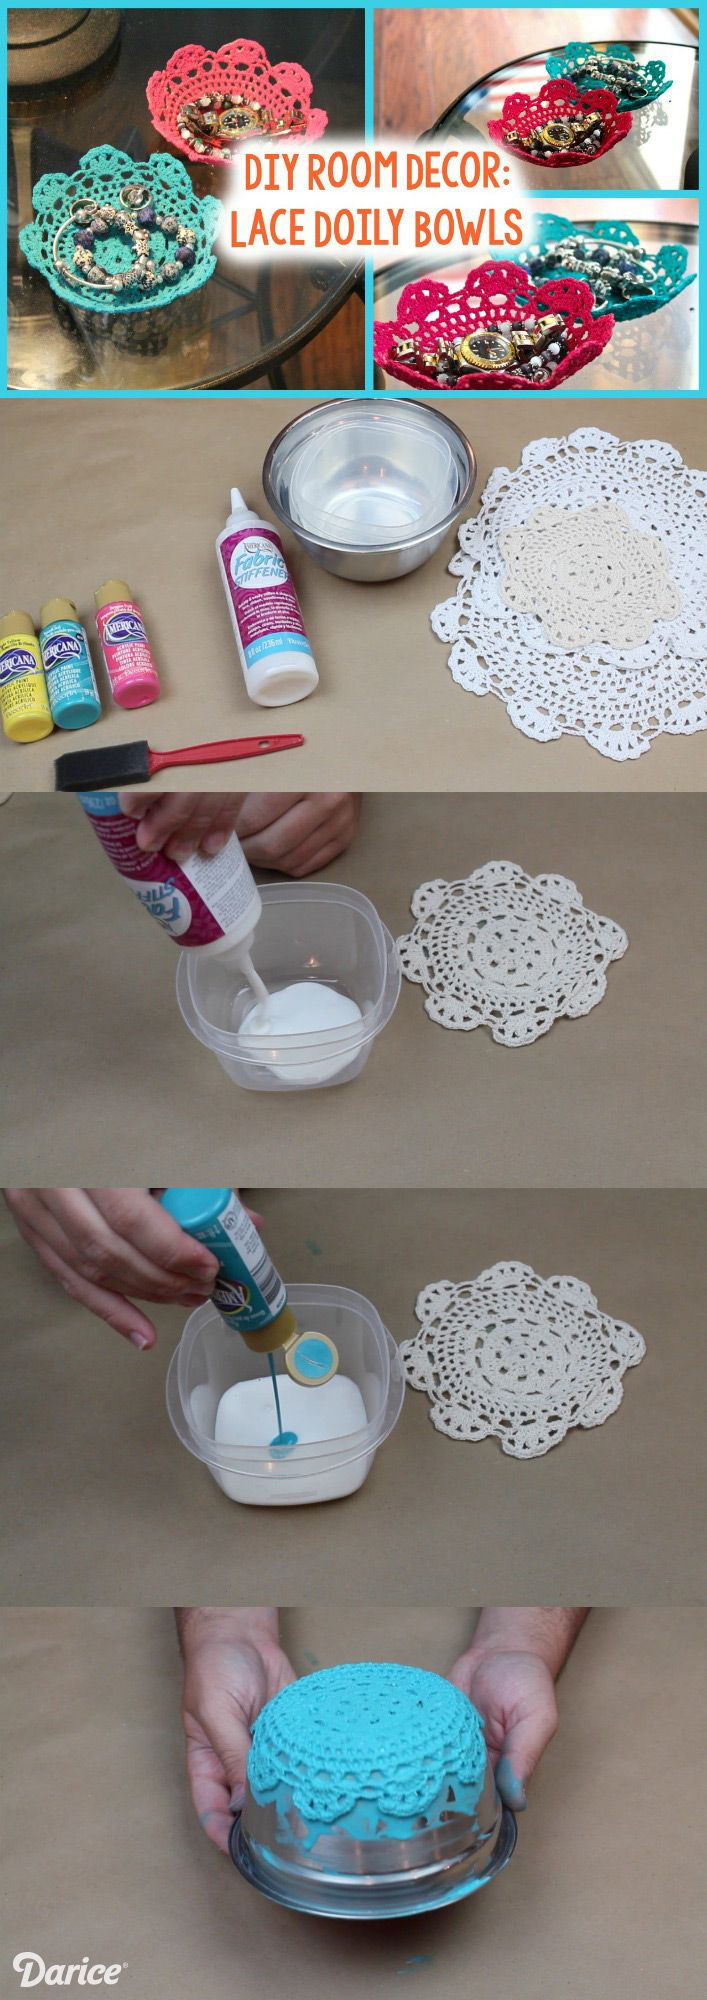 Colorful DIY Lace Doily Bowl Tutorial